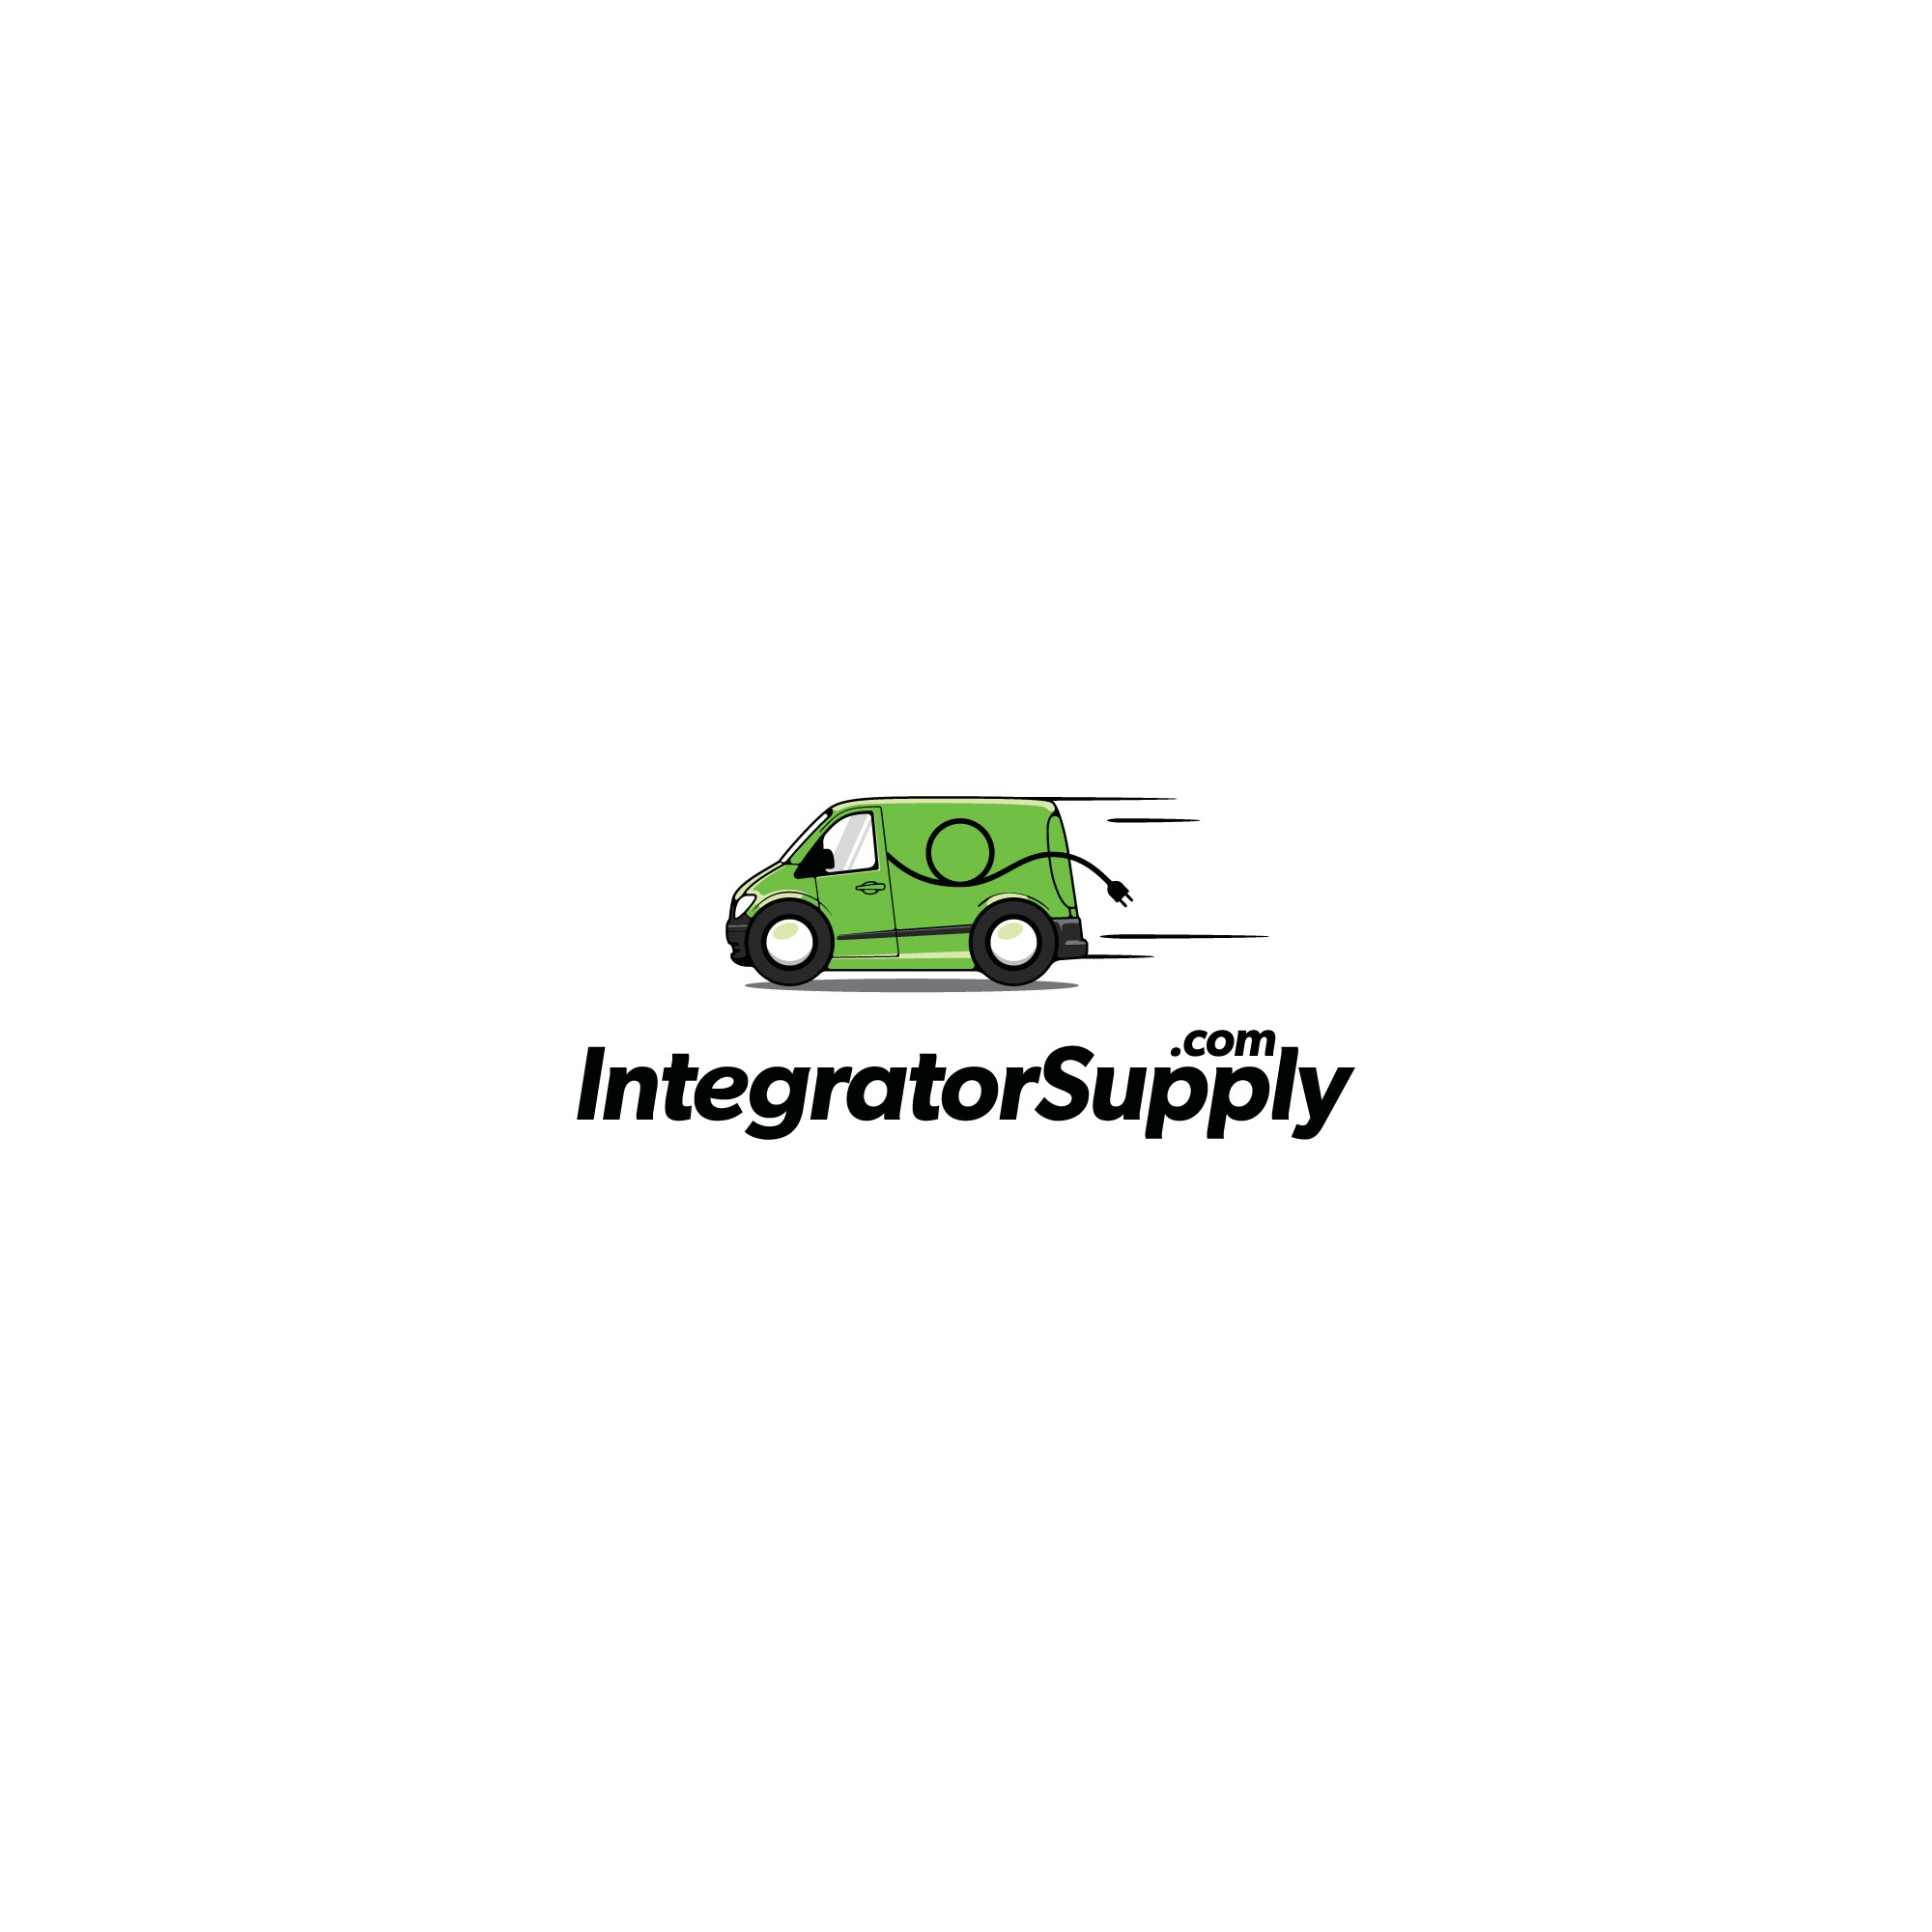 Audio/Visual/Electrical supply company needs logo - anything goes!